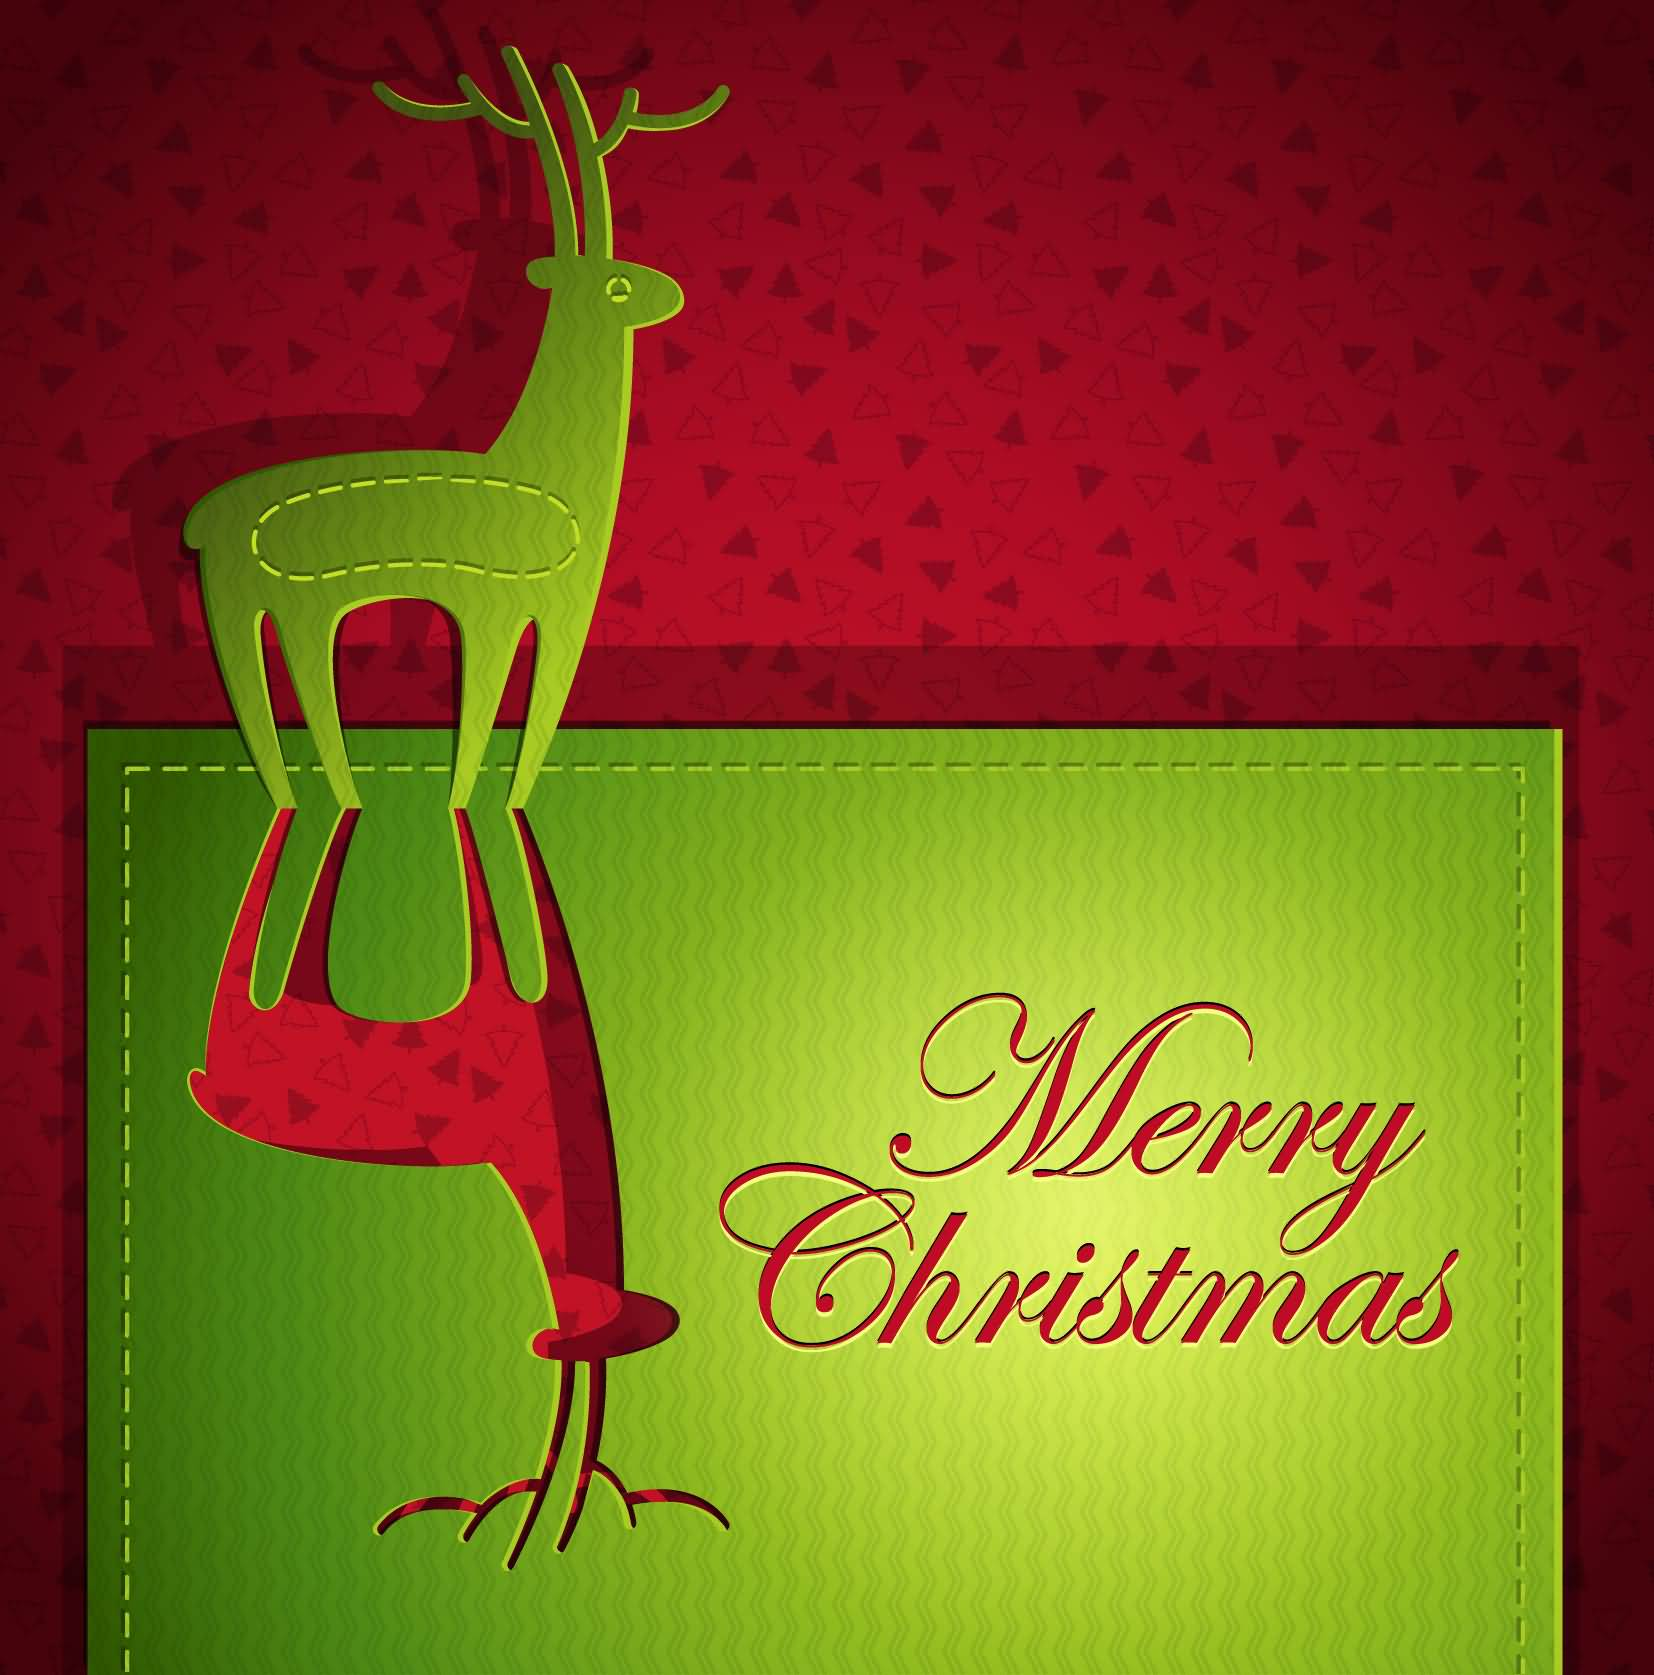 Christmas Cards Ideas Image Picture Photo Wallpaper 13